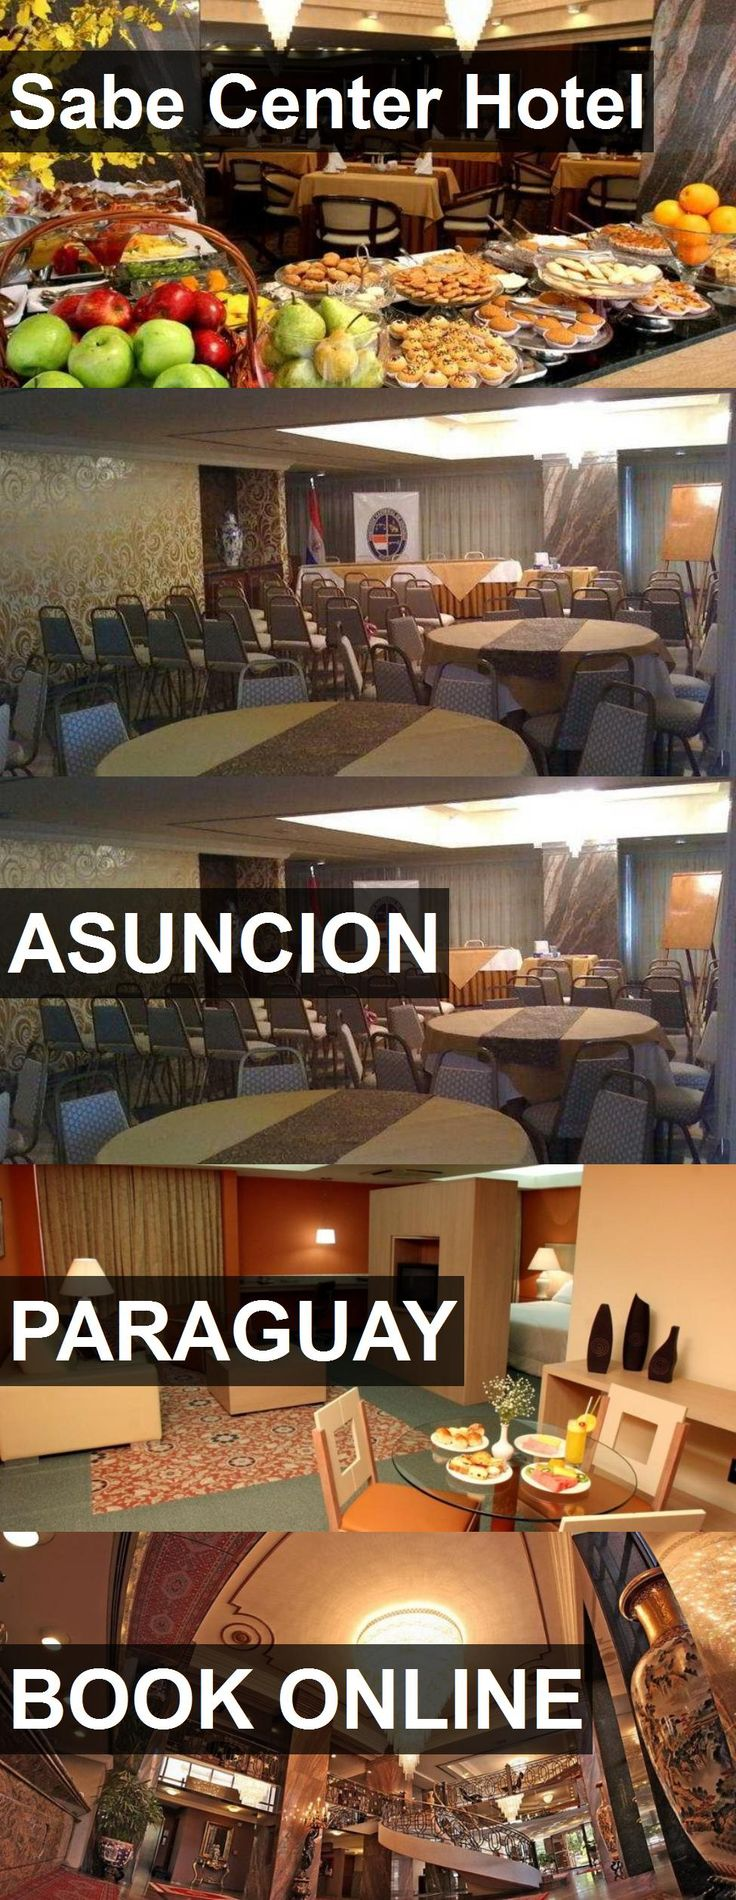 Sabe Center Hotel in Asuncion, Paraguay. For more information, photos, reviews and best prices please follow the link. #Paraguay #Asuncion #travel #vacation #hotel